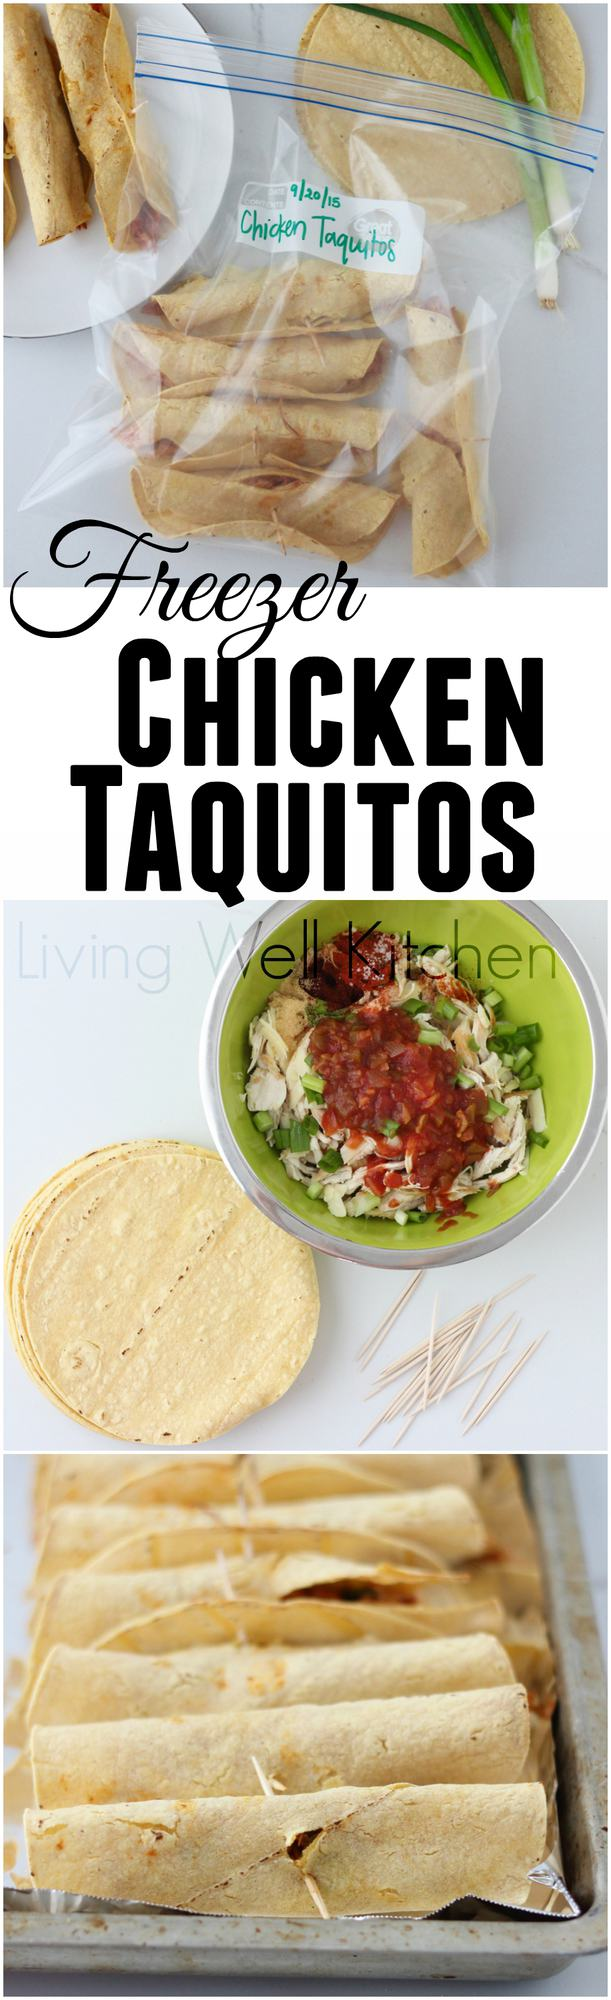 Make a batch of chicken taquitos to keep in the freezer when you need a quick snack ~ Freezer Chicken Taquitos from Living Well Kitchen @memeinge